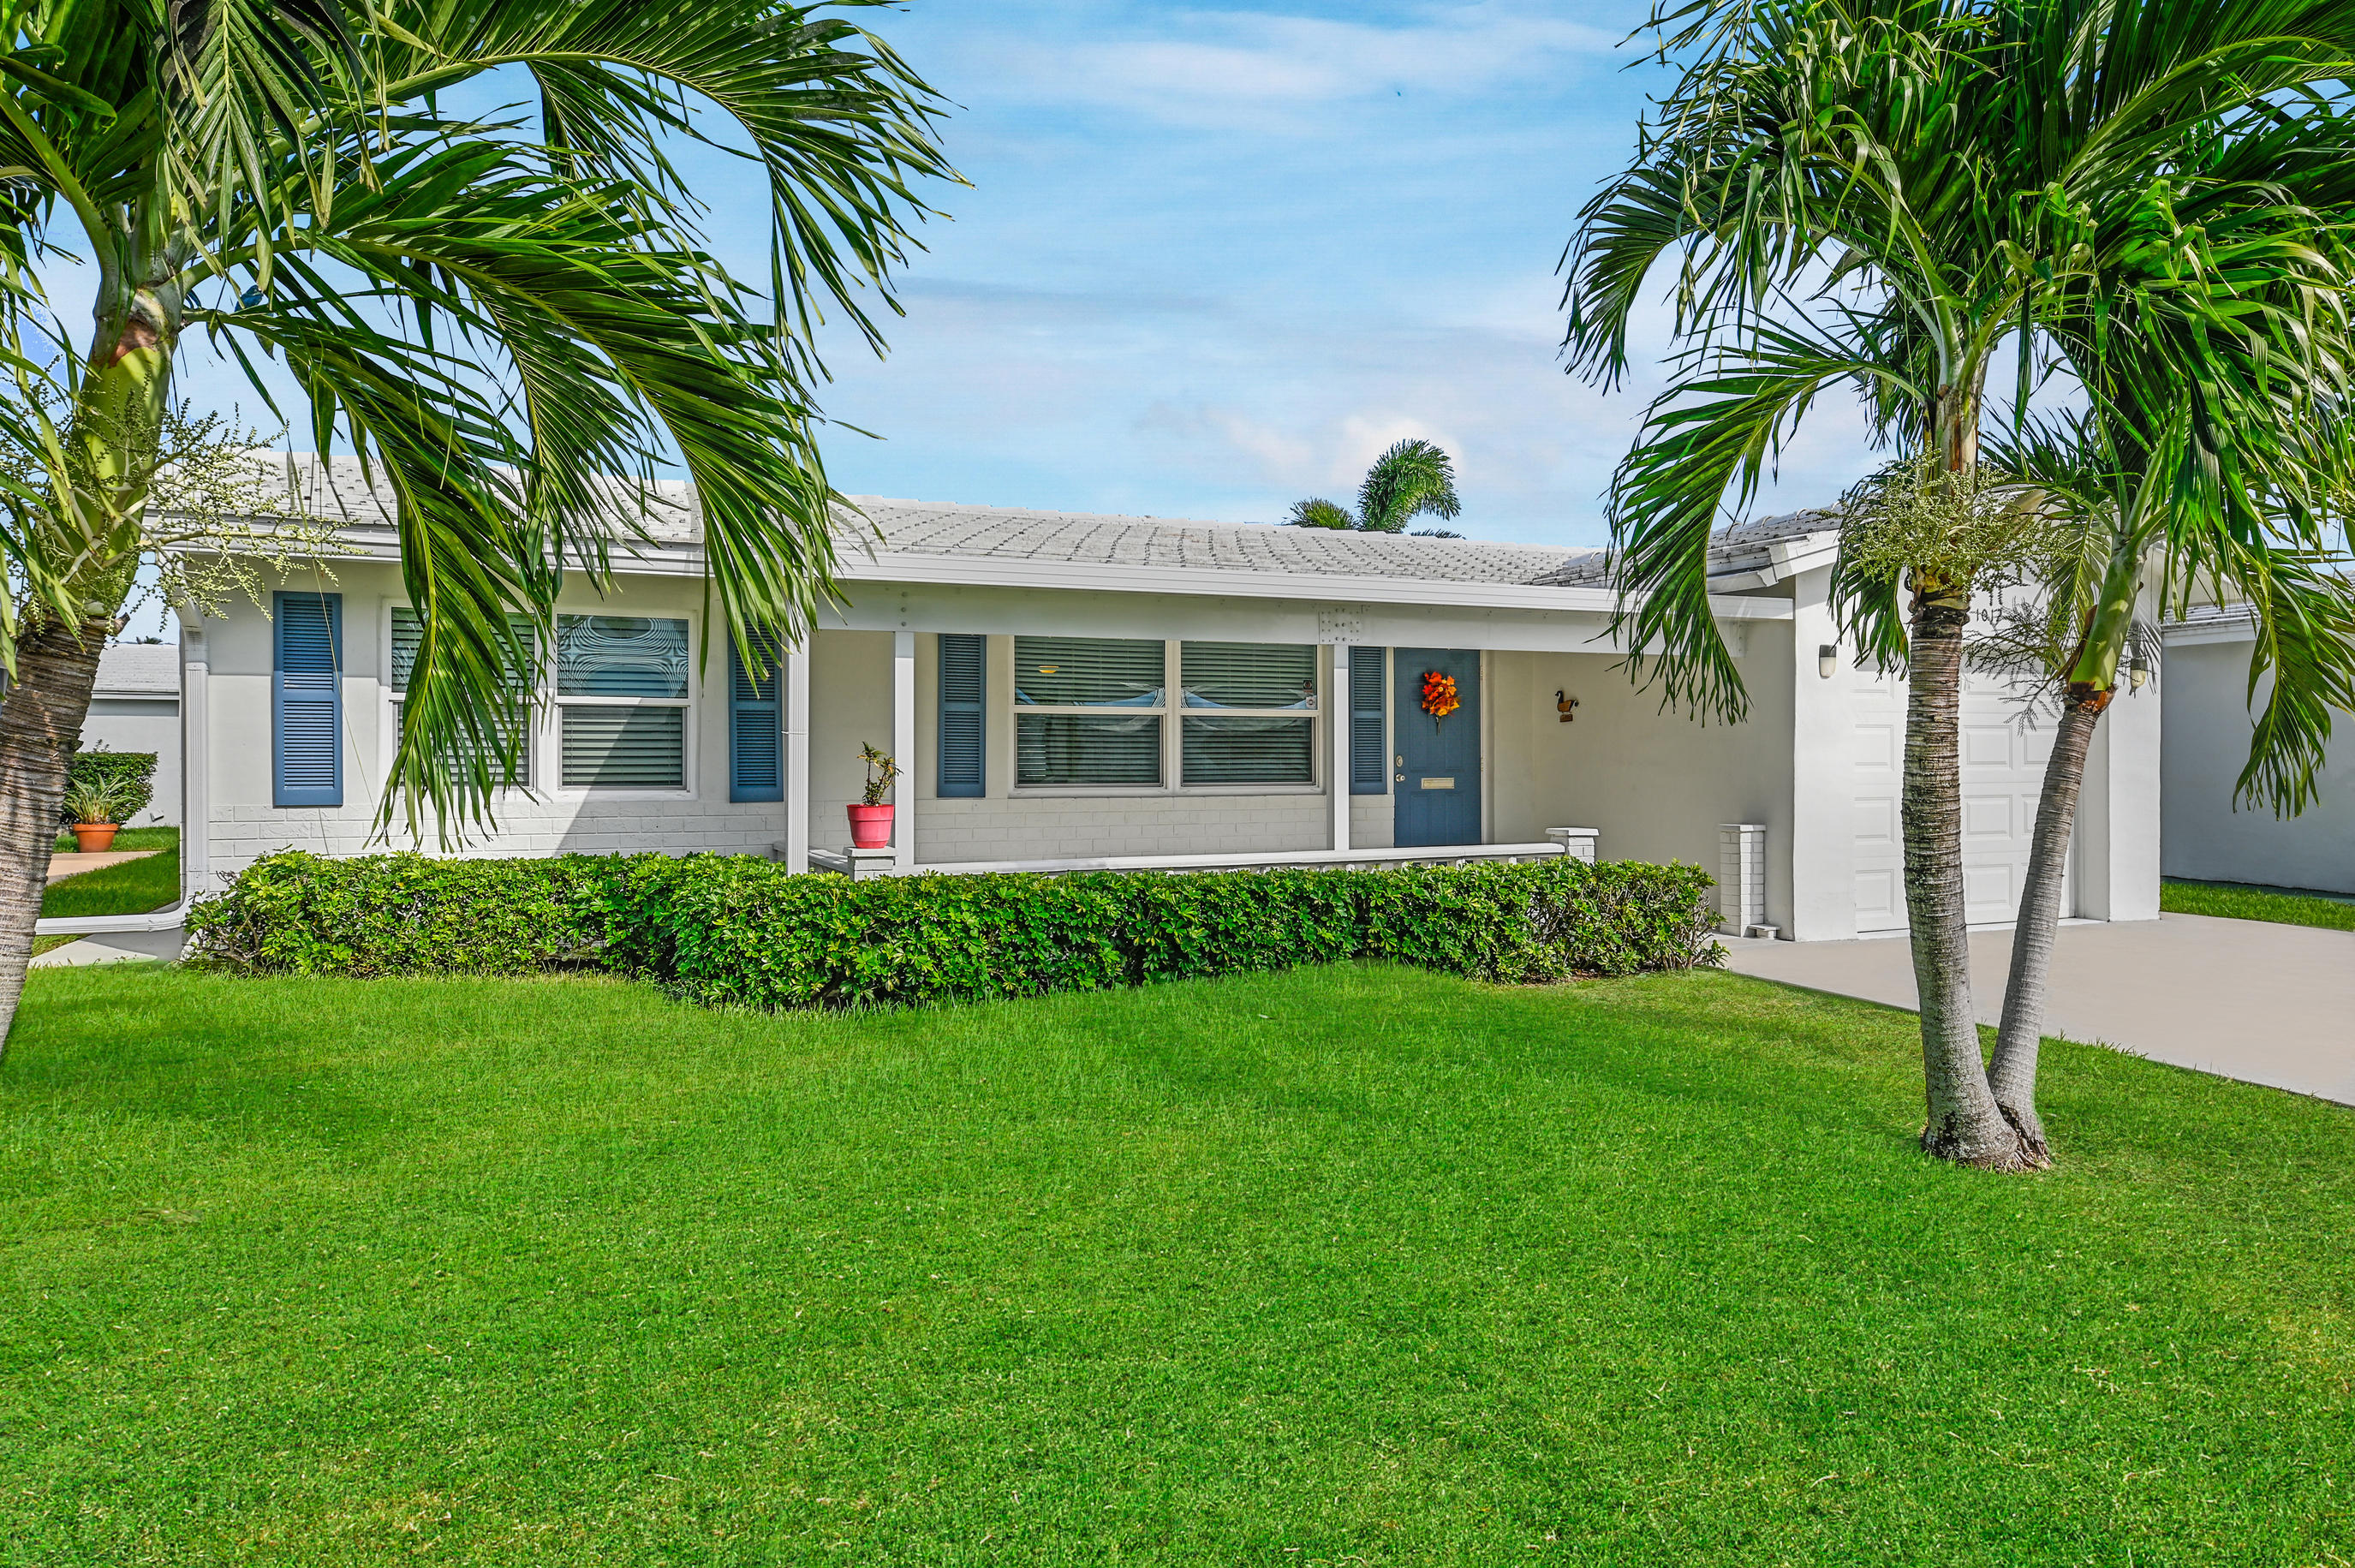 Deluxe Edgewood with thousands in upgrades.  Paid up recreation lease in full. Roof replaced 2006 tile/Flat 2017. A/c replaced 2015.  Hot water heater 2010.Windows all replaced PGT insulated. Front porch has an insulatedroof to enjoy those Florida breezes.Garage door, exterior doors and Pedestrian doors all replaced. Existing driveway replaced and home has a rear patio. Kitchen cabinetry replaced with silestone counter tops.  Extra deep double sink. Glass tile backsplash.. Extra cabinetry. Recessed lighting. Both bathrooms updated. Extra closet in master bedroom and additional closet in Florida room. Tile thru out and carpeting in bedrooms. Crown molding in Living room and Florida room. Ideally located on quiet street yet close to R2 & R3 clubhouses. Free 18 Hole golfcourse Par 3..A GE